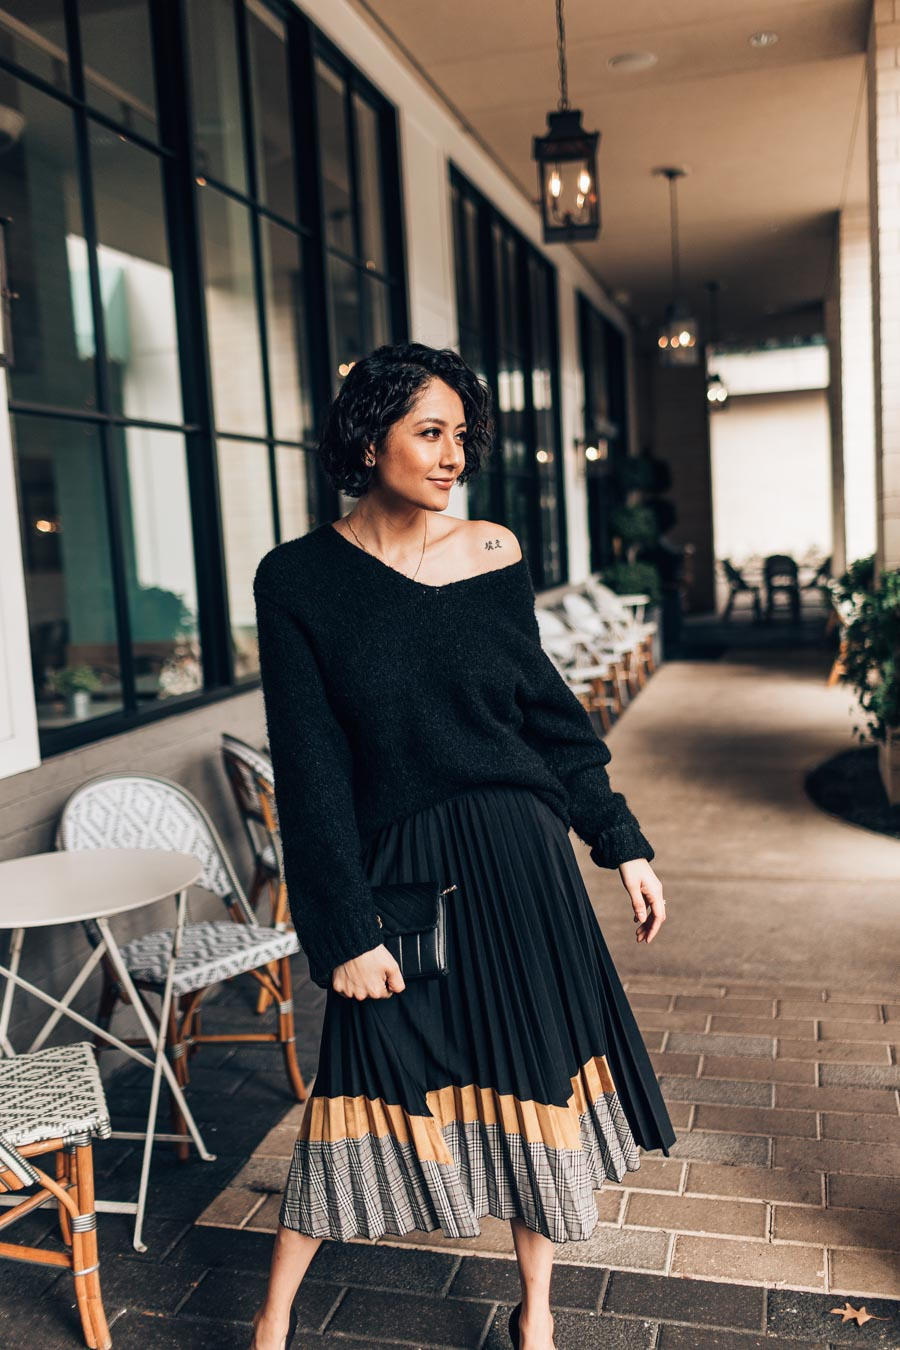 Fashion blogger Lilly Beltran wearing an oversized sweater and Chicwish pleated midi skirt for a street style winter outfit idea.